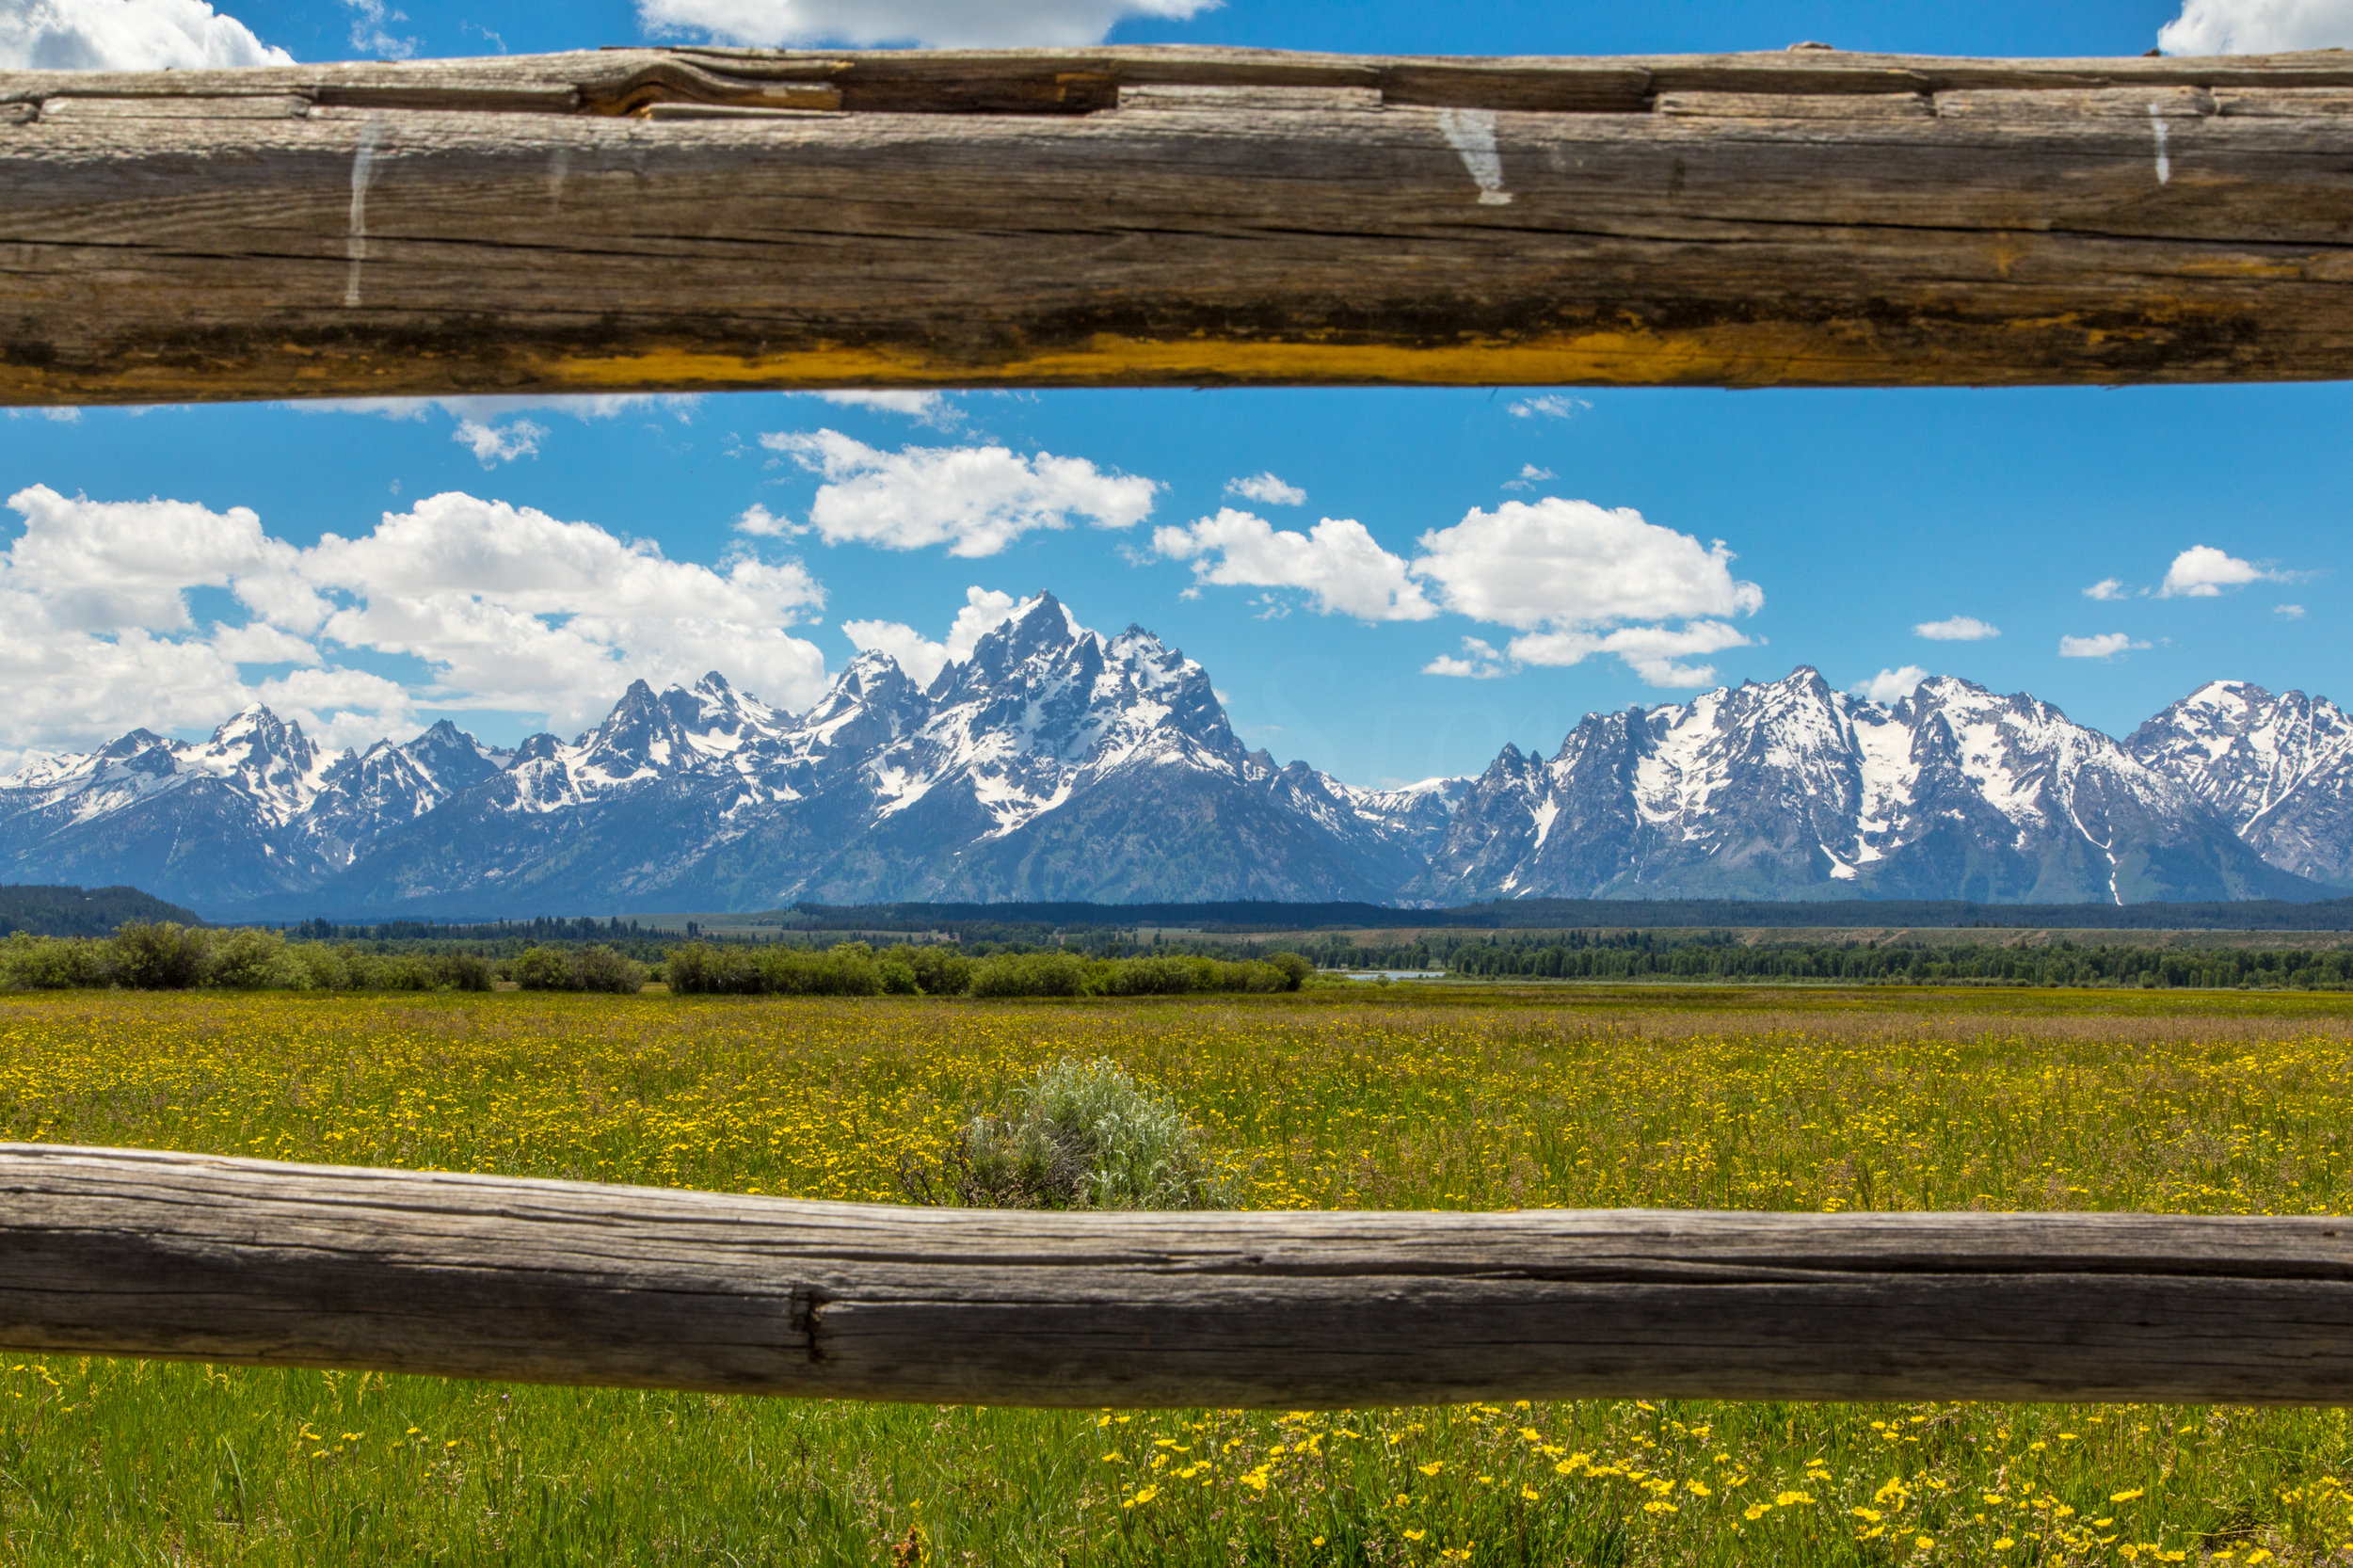 Cunningham Cabin, Grand Teton National Park, Image # 8388